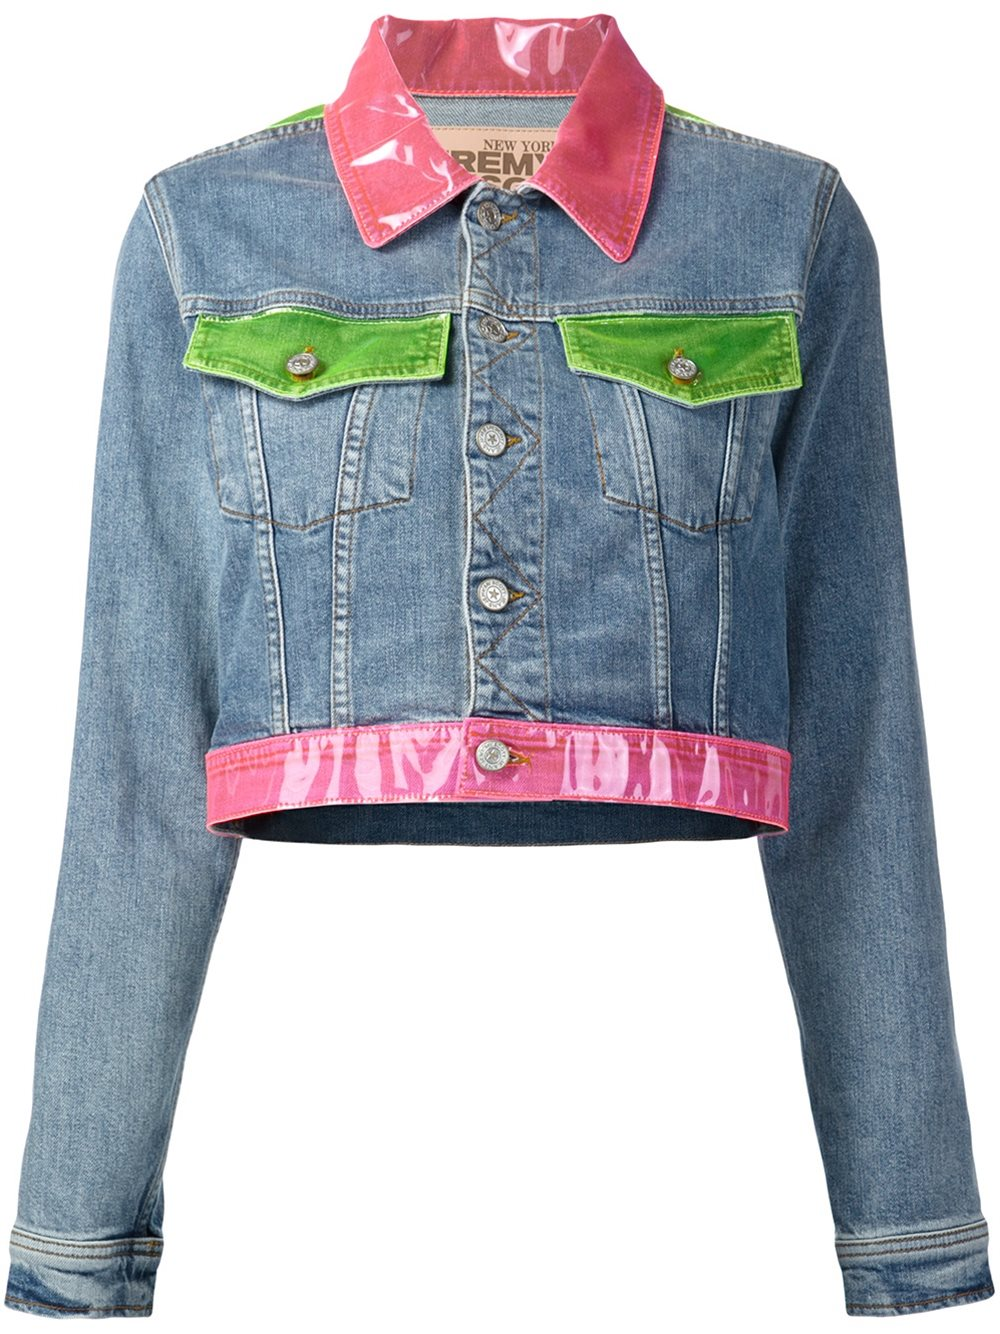 jeremy scott jacket.jpg